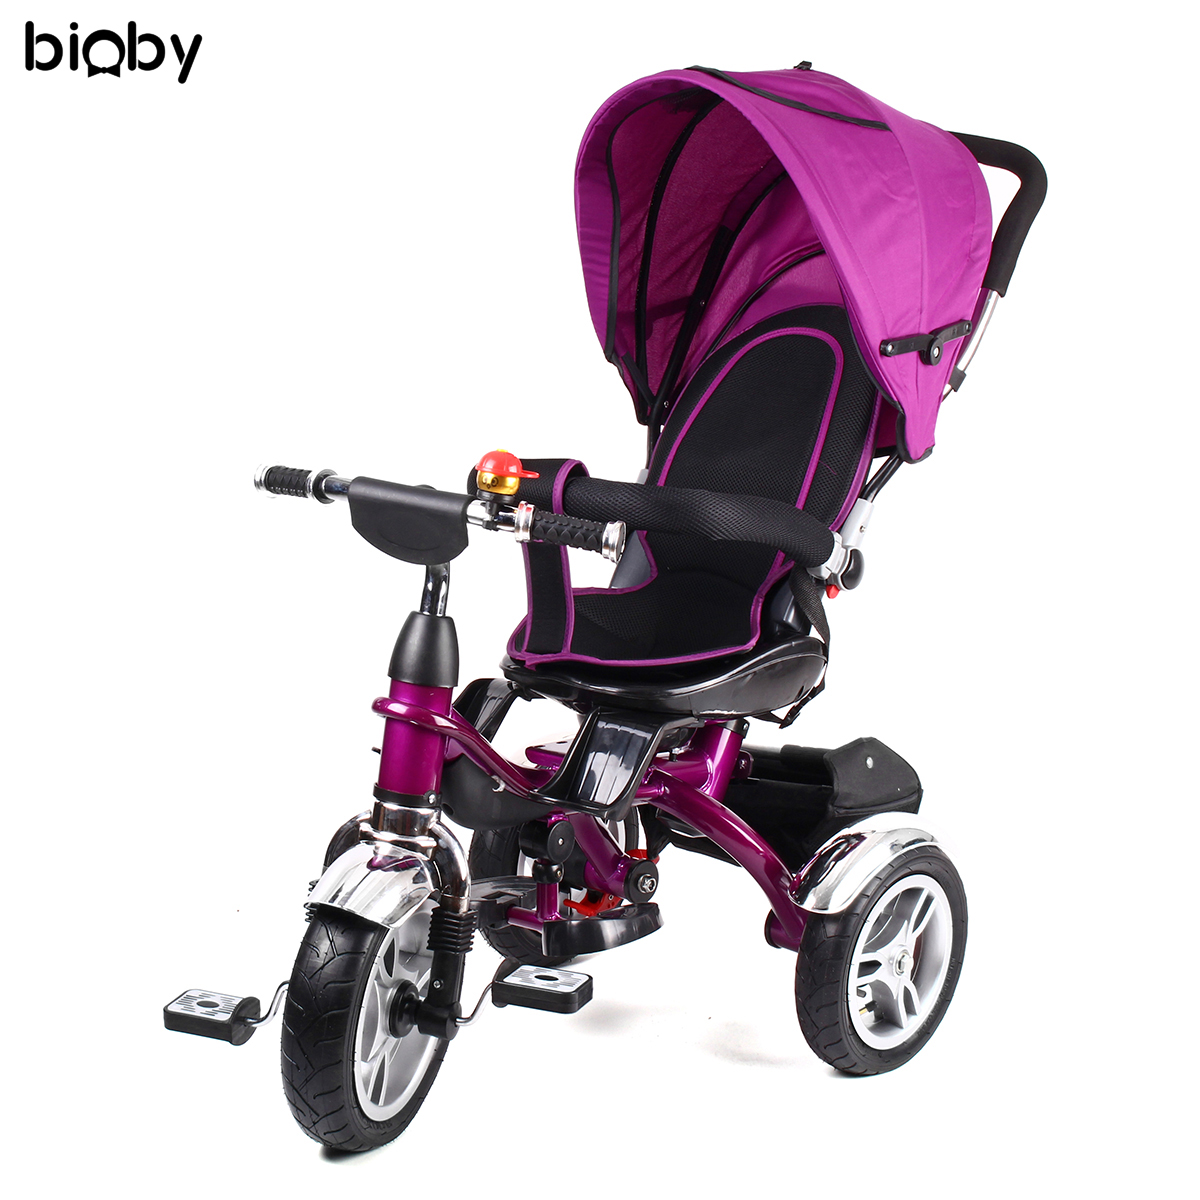 Baby Kids Reverse Toddler Tricycle Bike Trike Ride-On Toys Stroller Prams 360 Degree Rotating Chair Car Seats Sleeping Safety окошкина е ред визуальный итальянско русский словарь